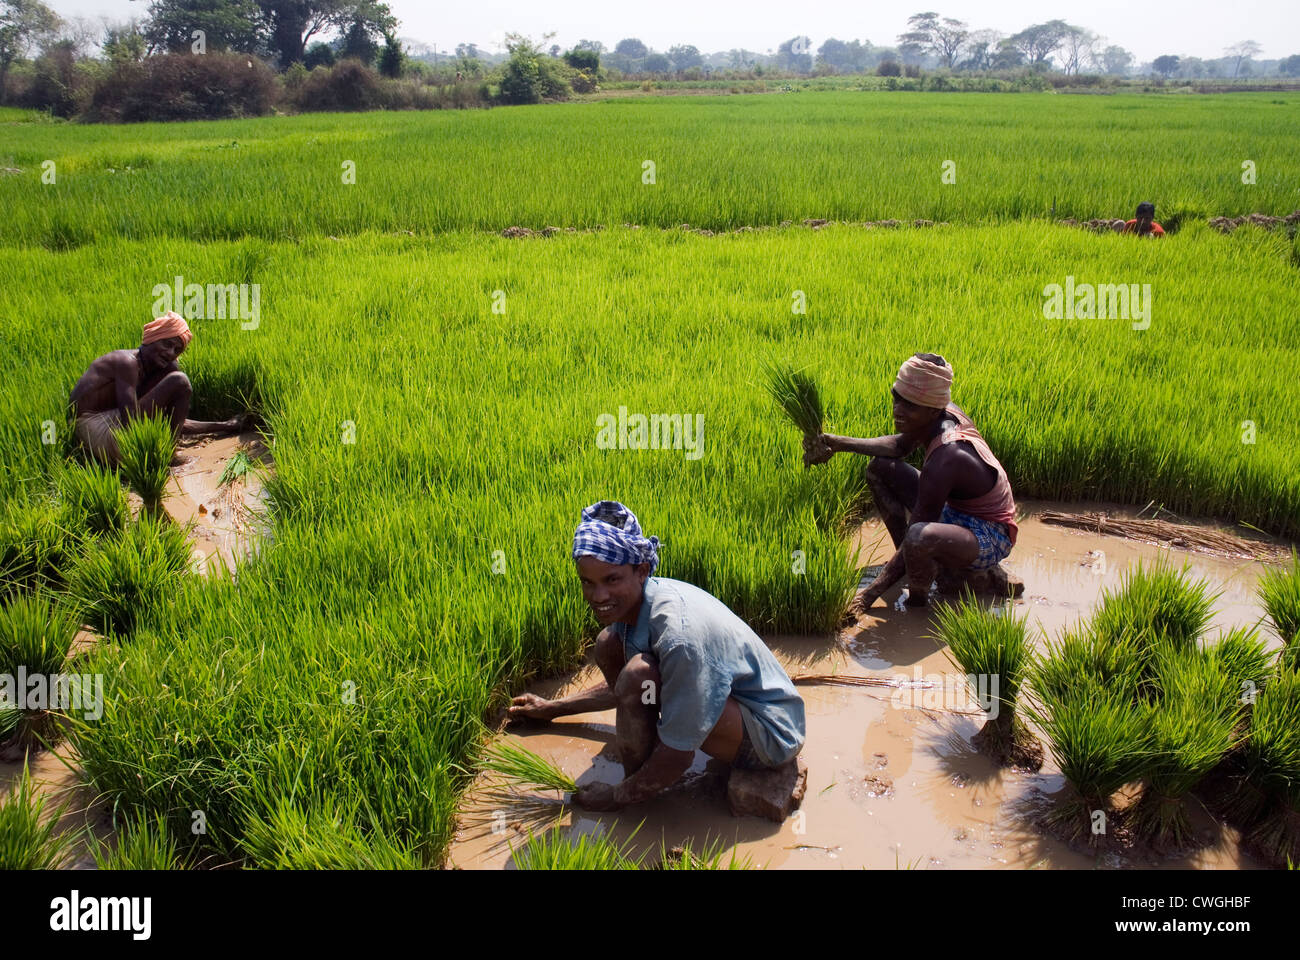 Indian farmers working in a rice paddy field in Udaygiri ...